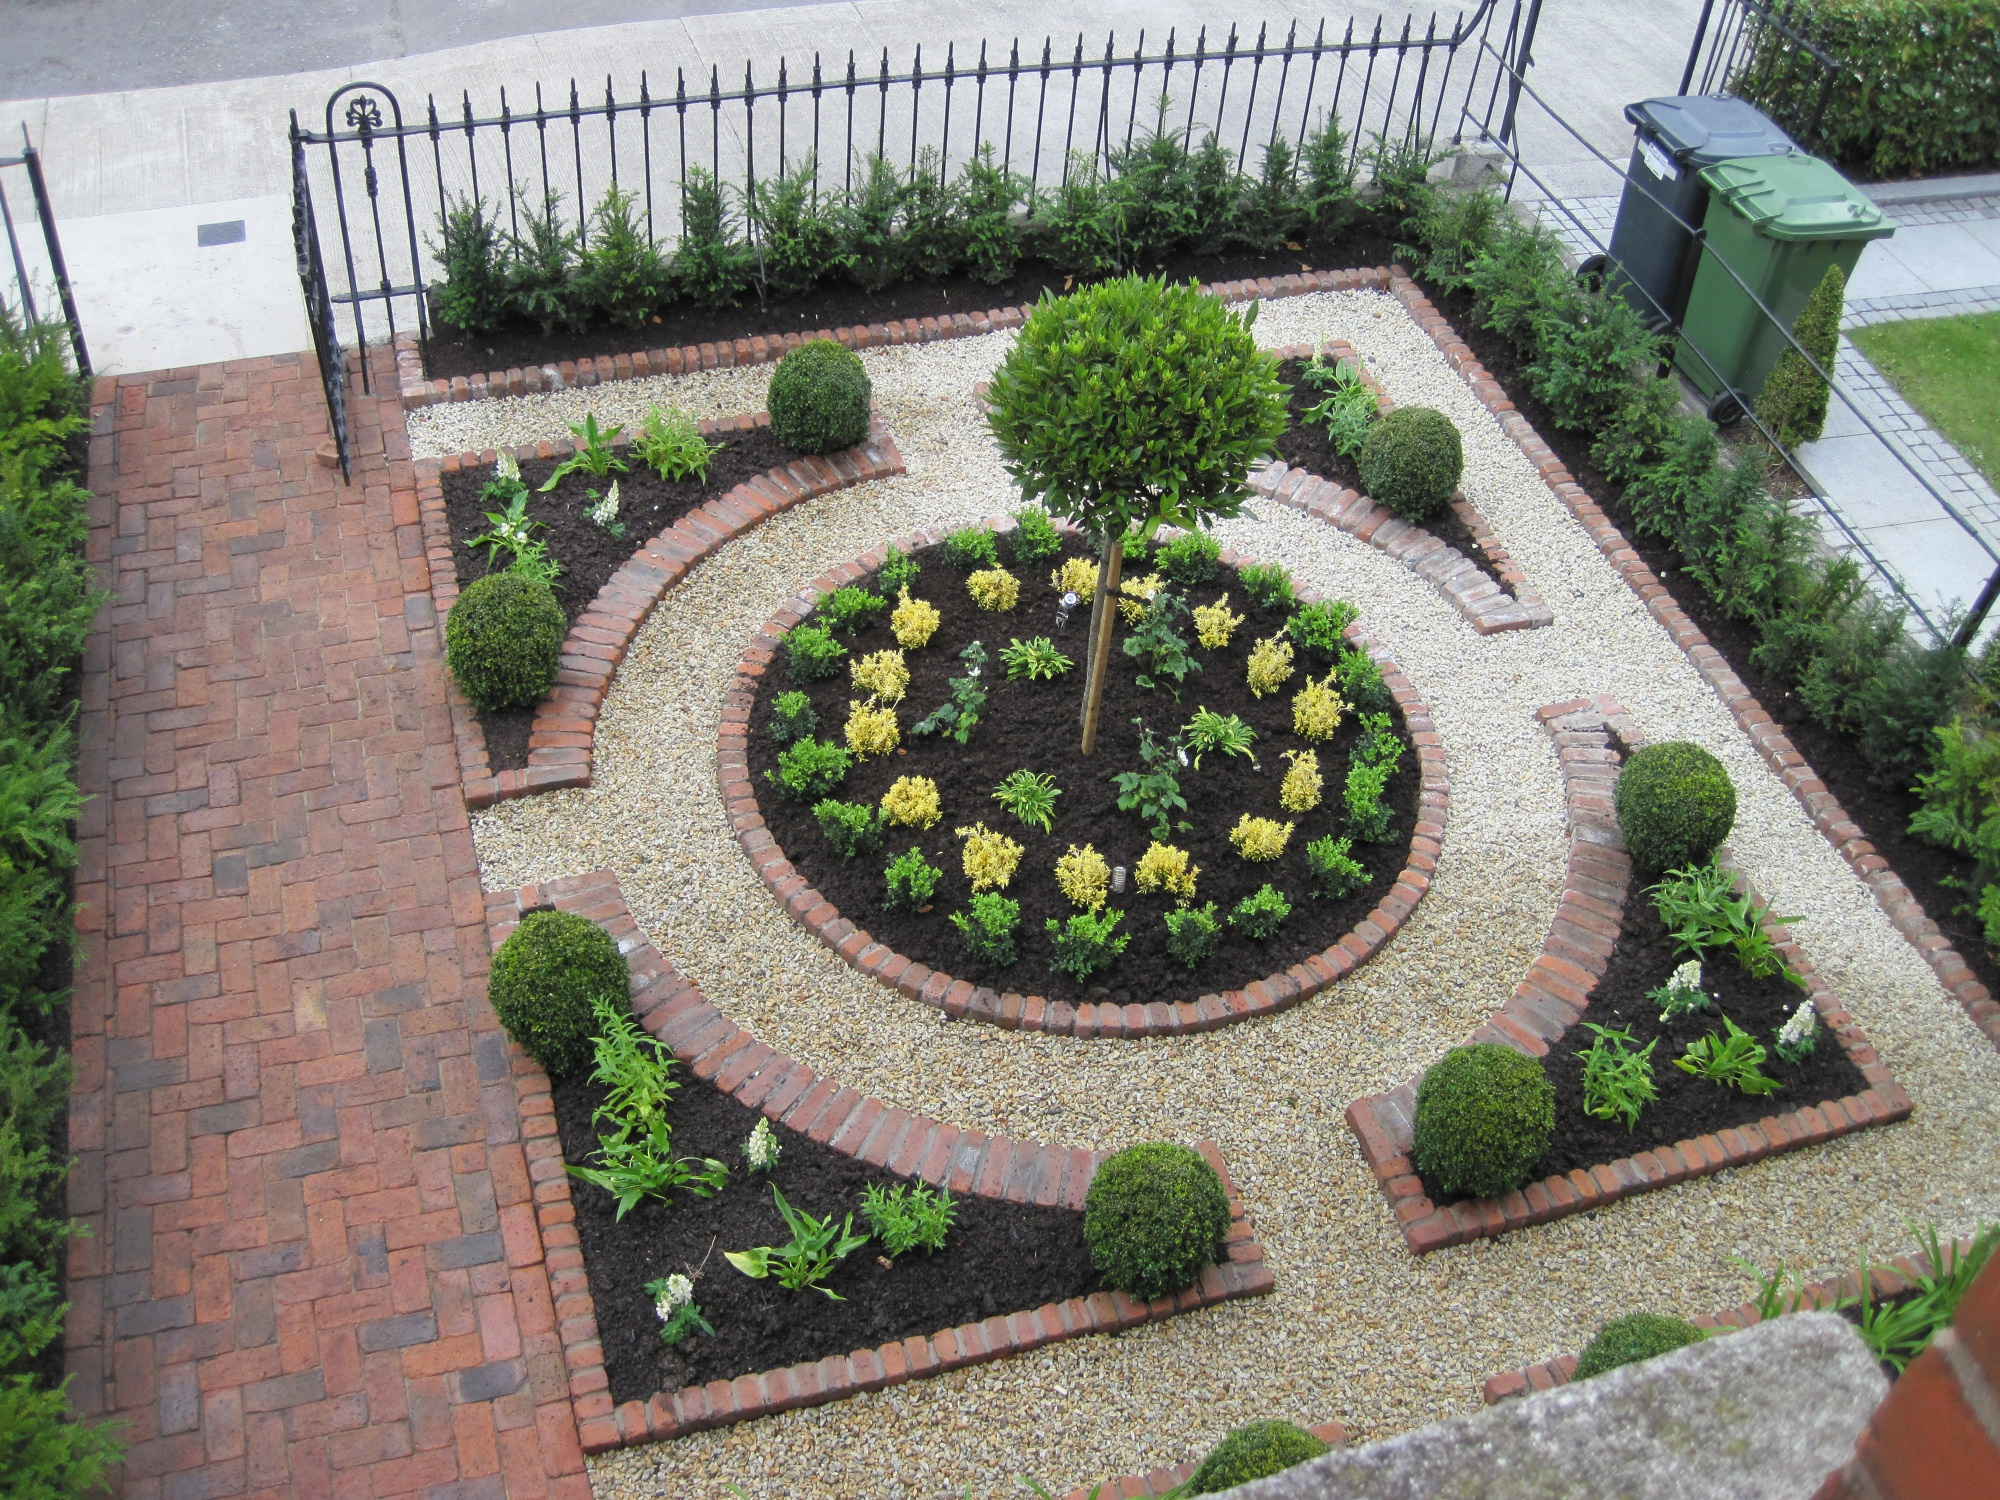 A small garden victory a formal plan making it lovely for A small garden